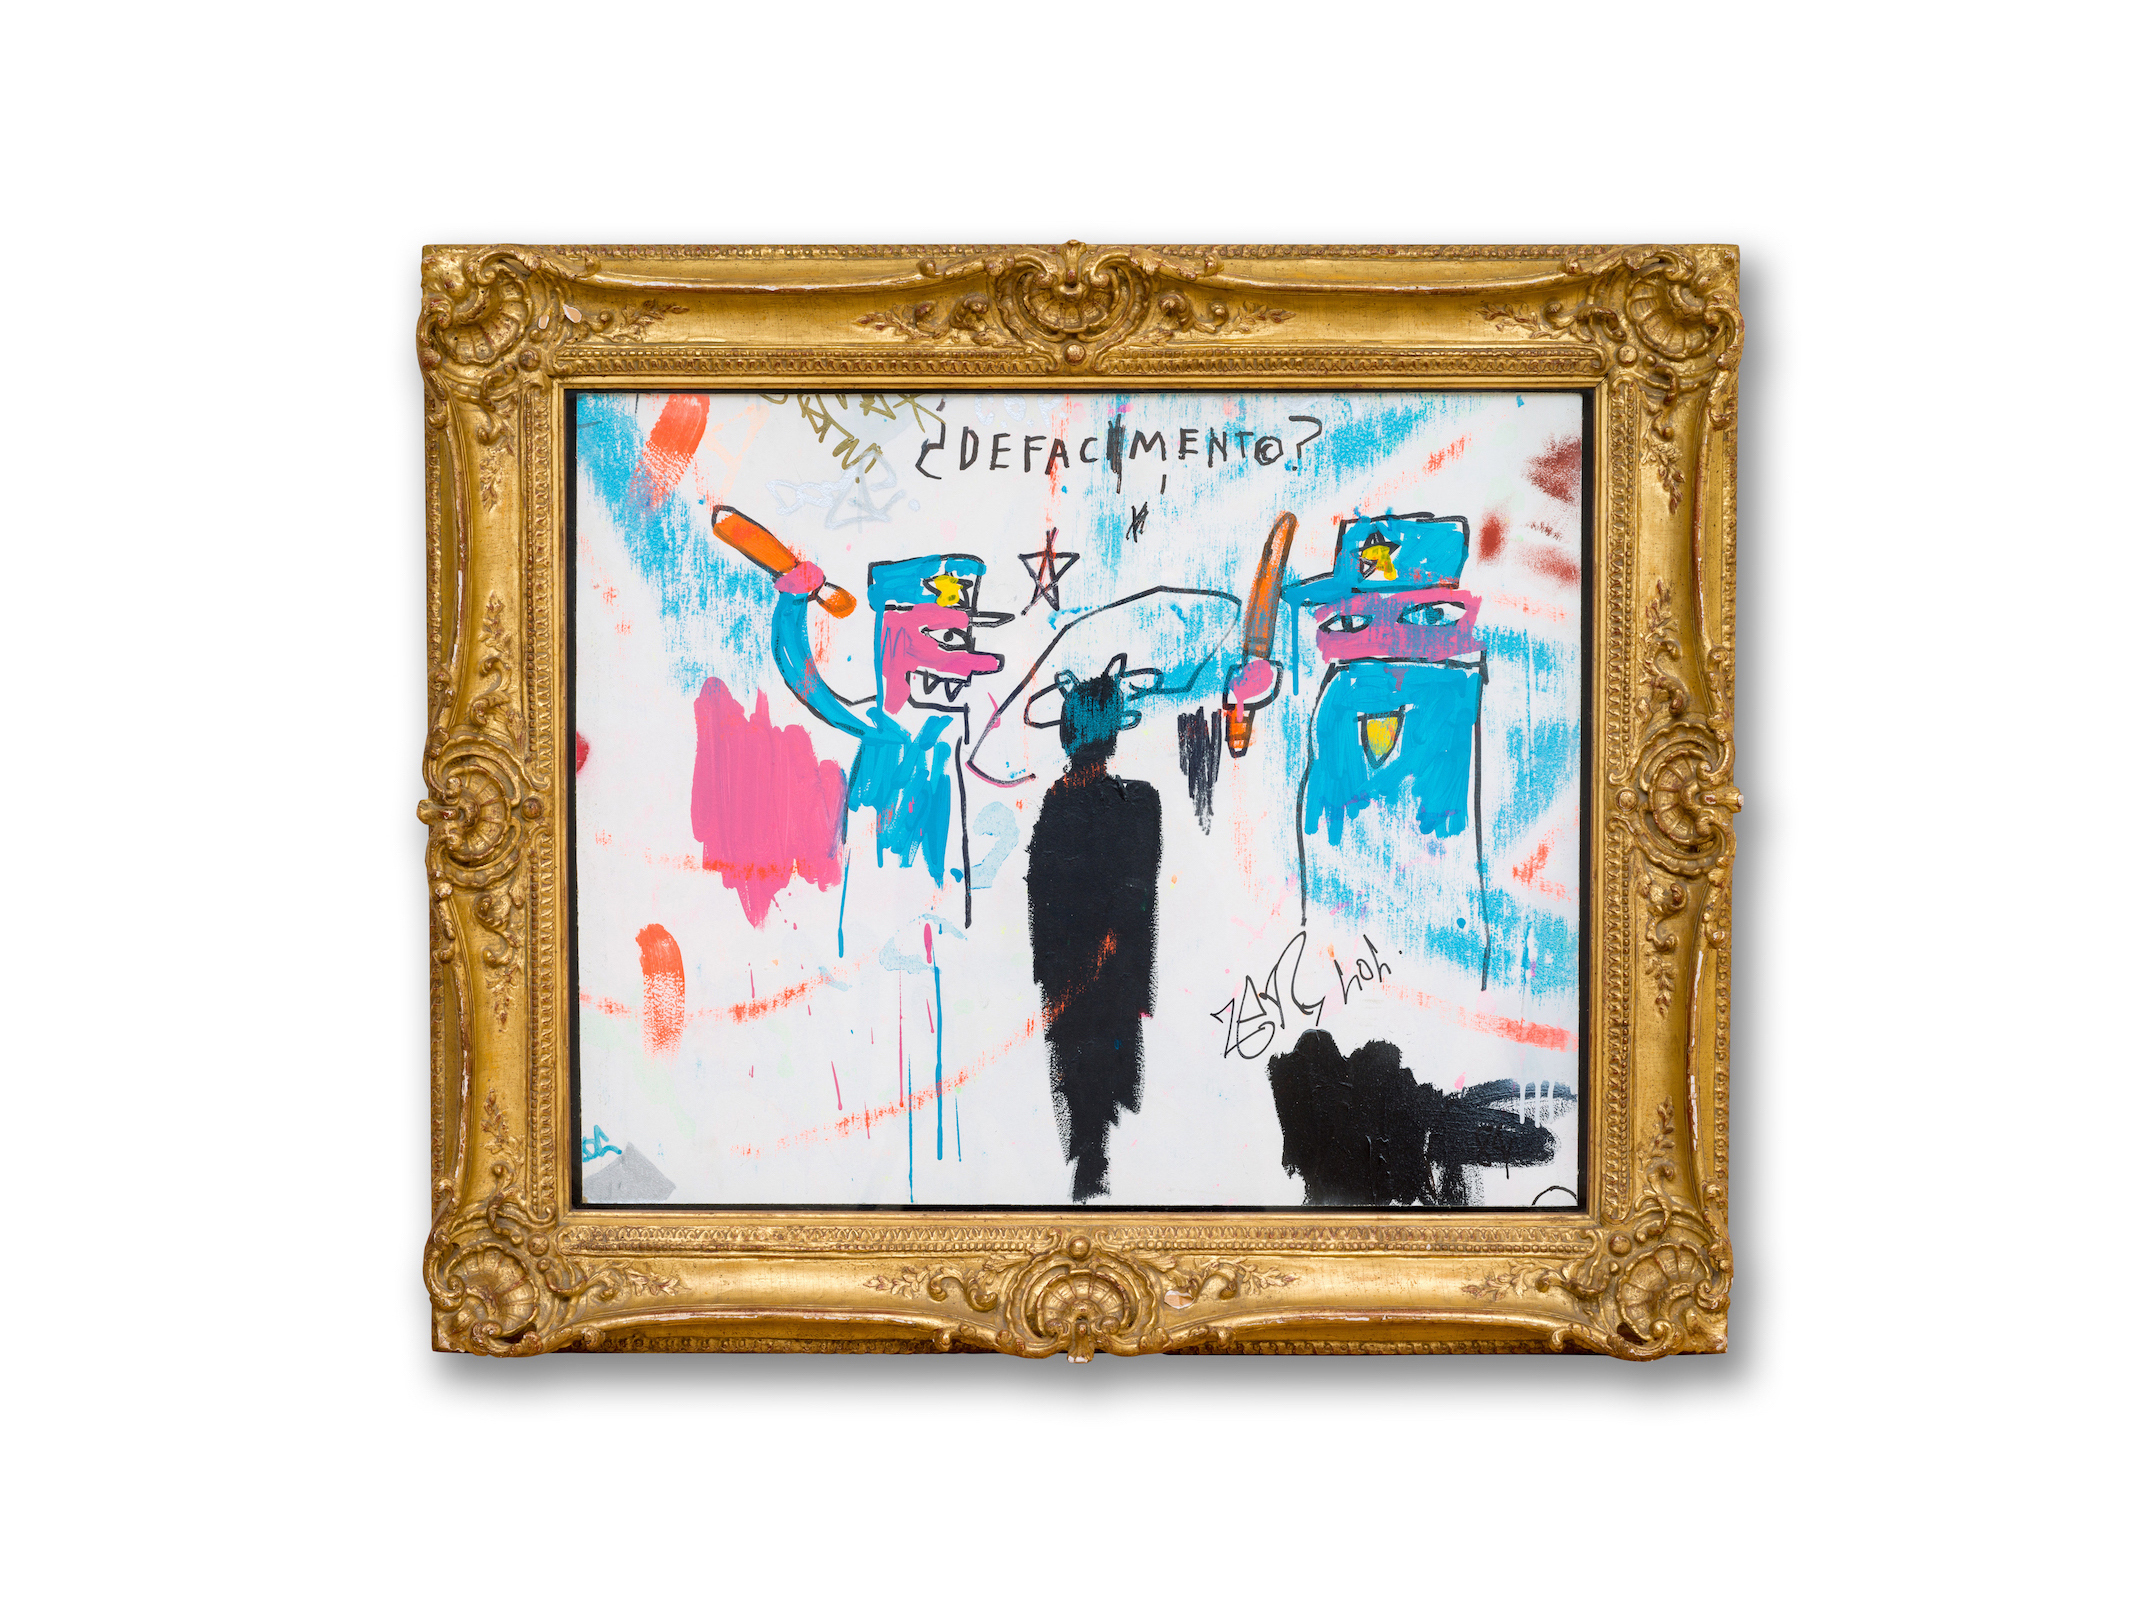 Jean-Michel Basquiat, Defacement (The Death of Michael Stewart), 1983